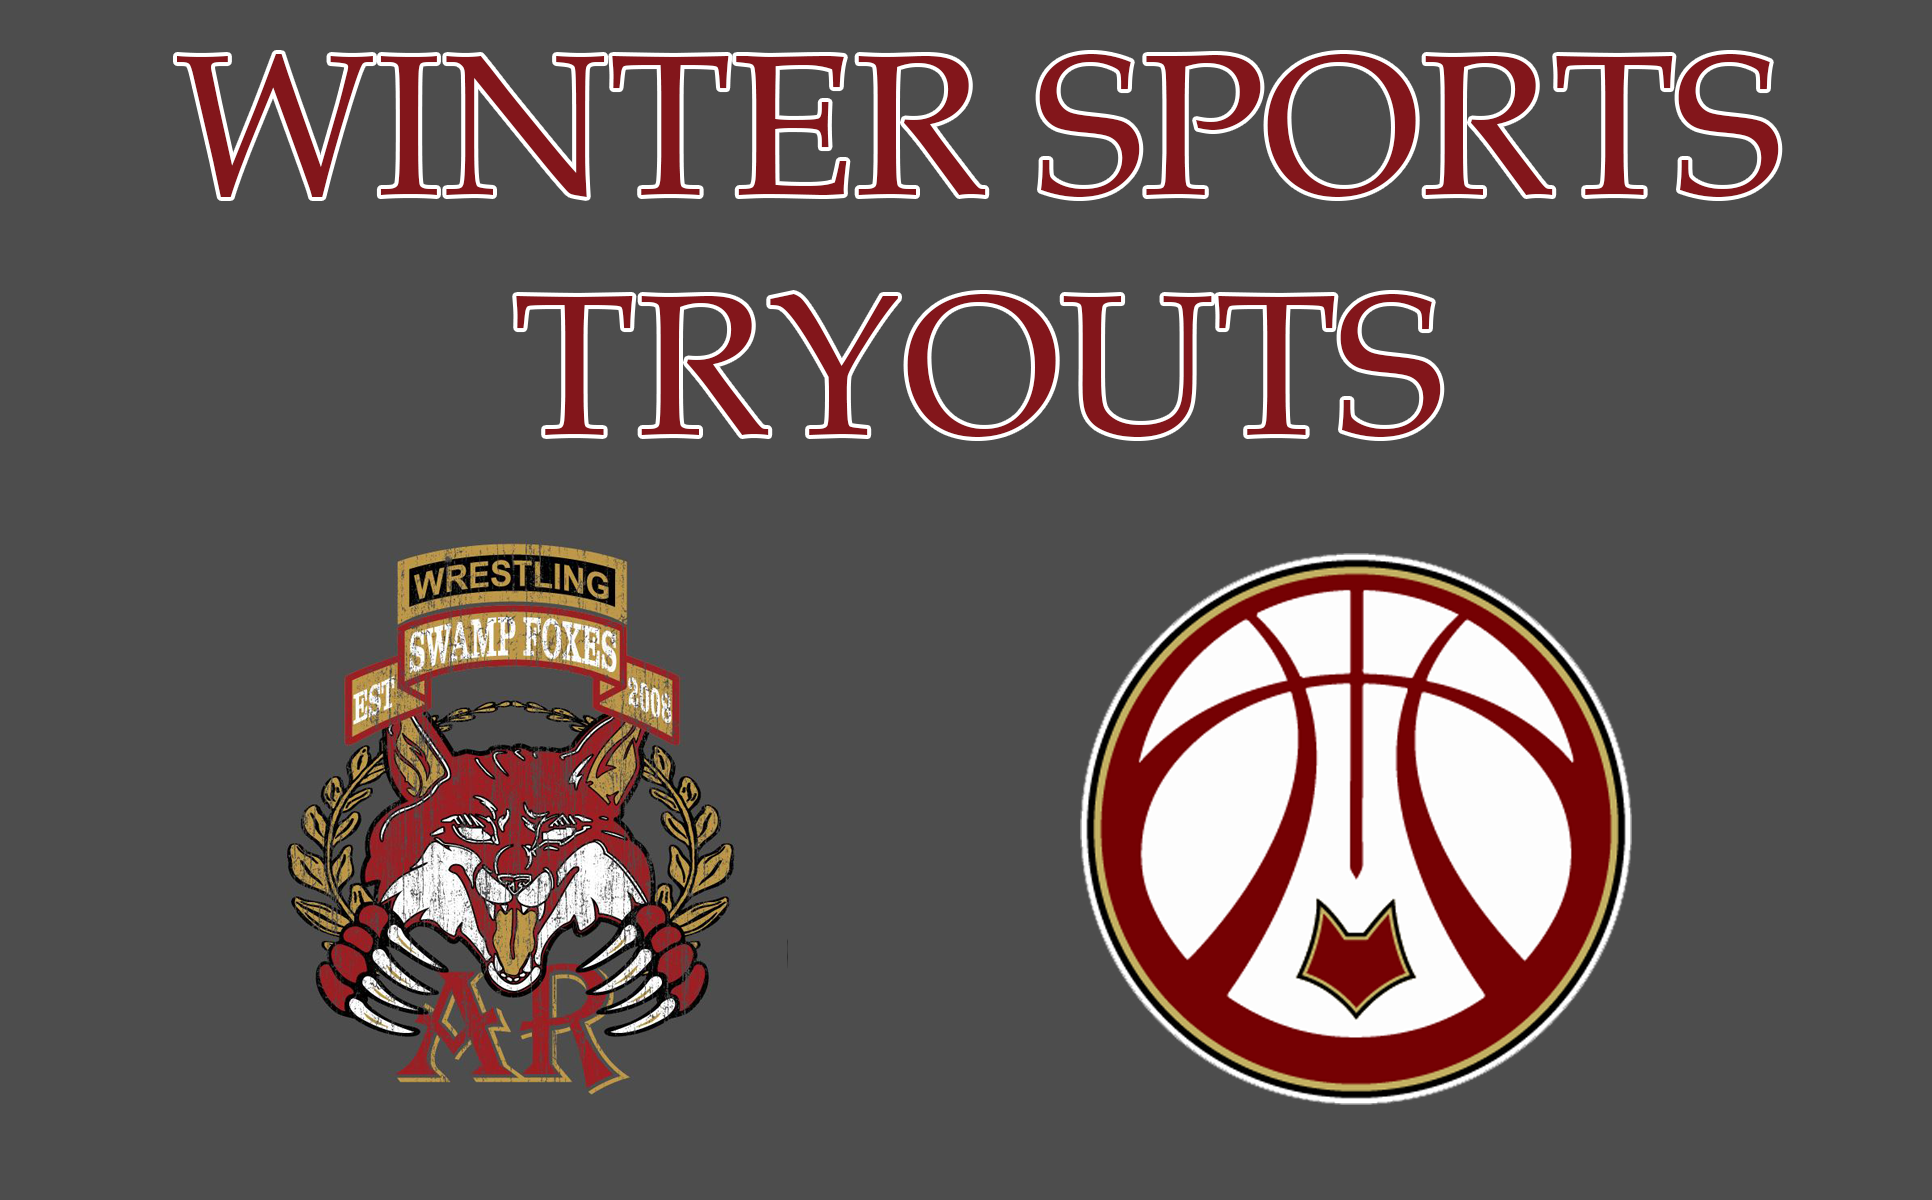 Winter Sports Try Out Information